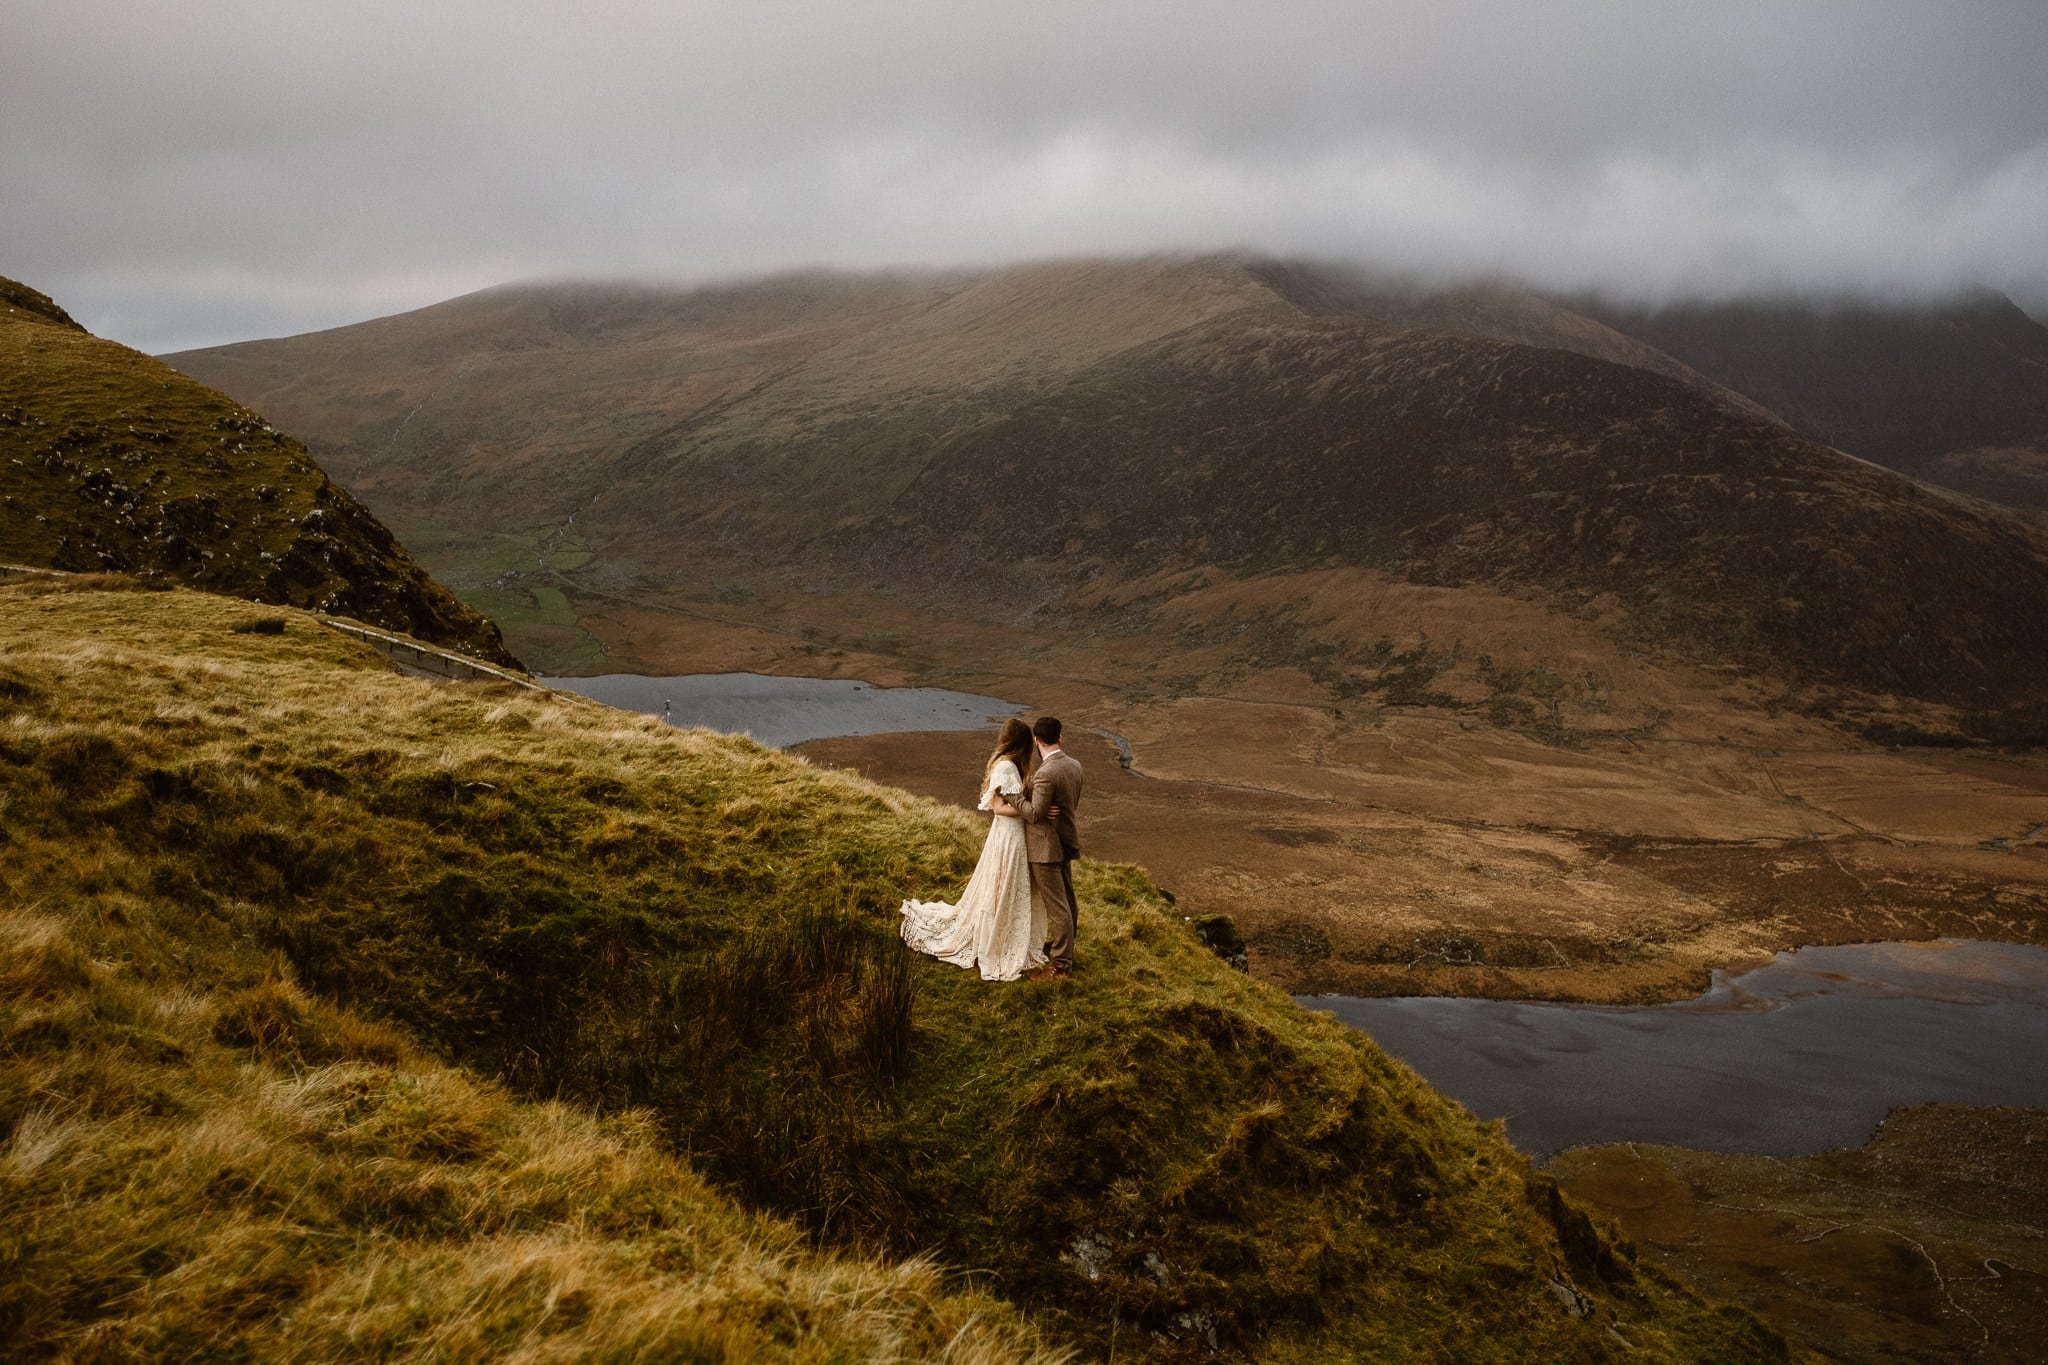 Ireland elopement photographer, Conor Pass adventure elopement, Ireland destination wedding photographer, adventure wedding photographer, hiking elopement